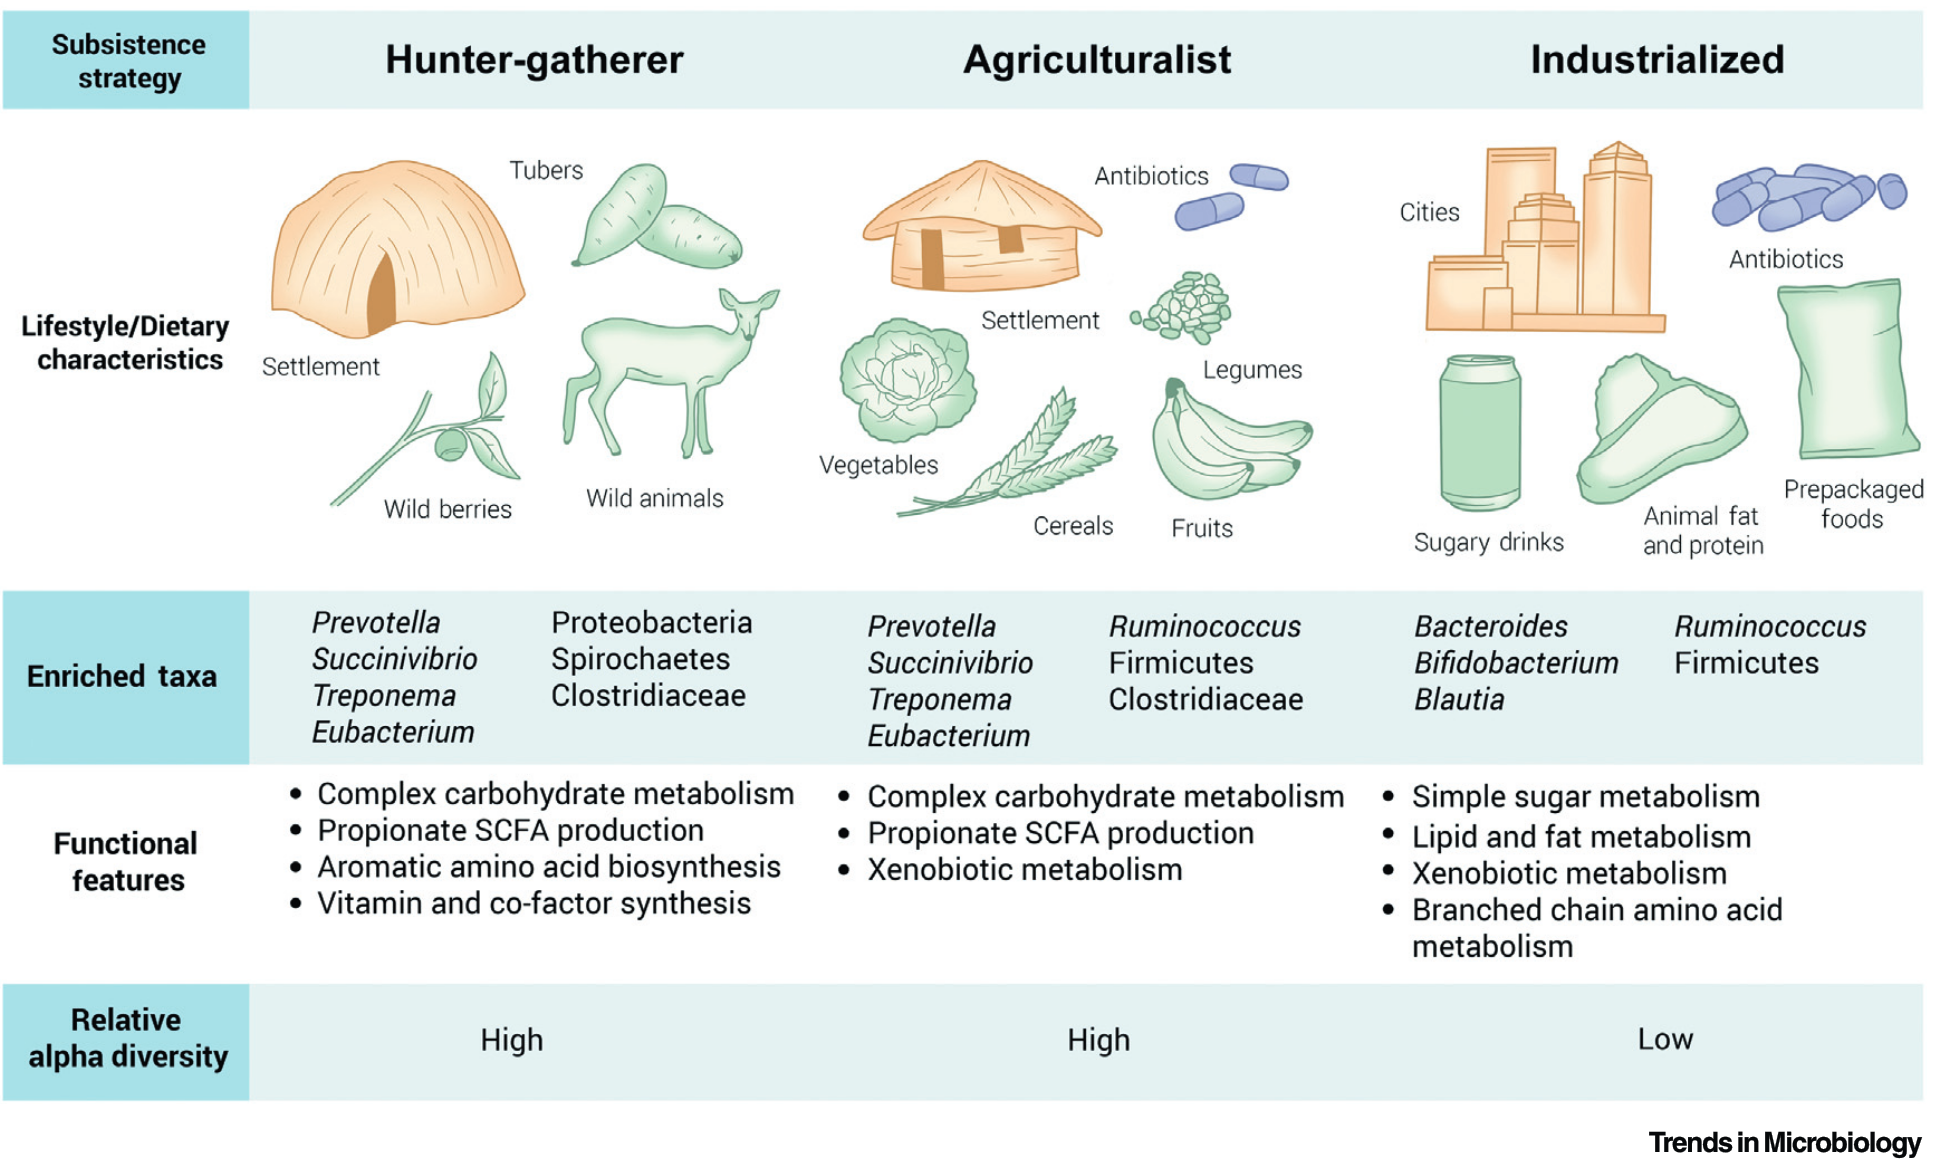 Surveying Gut Microbiome Research in Africans; Brewster, Tamburini, Asiimwe, Oduaran, Hazelhurst & Bhatt, Trends in Microbiology 2019